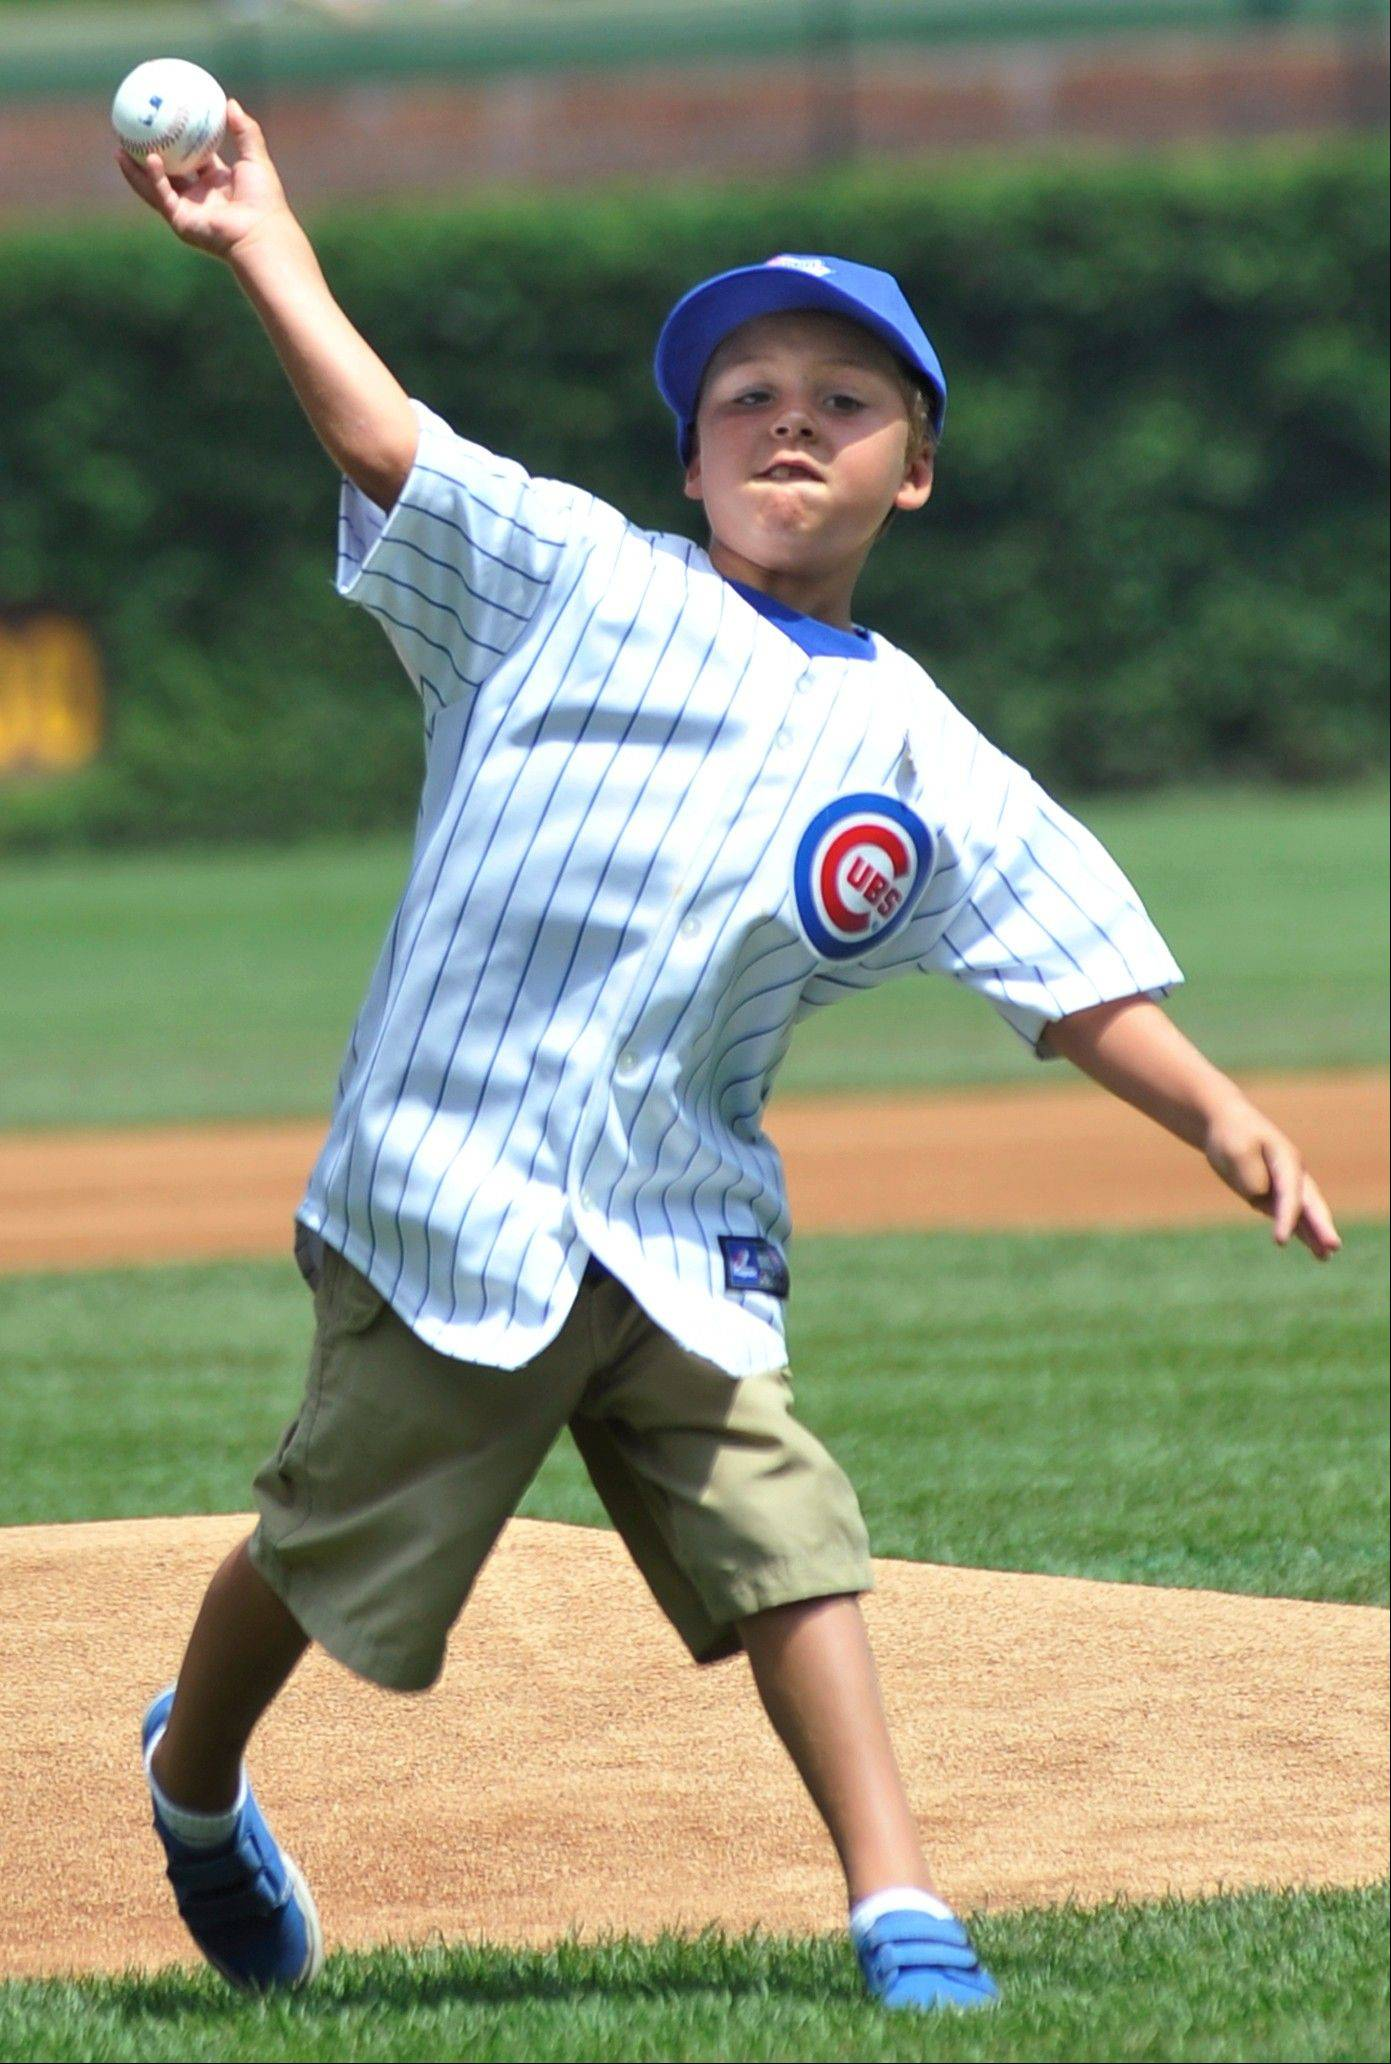 Seven-year-old Spencer Brown, grandson of Hall of Famer Ron Santo, throws out the ceremonial first pitch during Ron Santo Day on Friday at Wrigley Field.